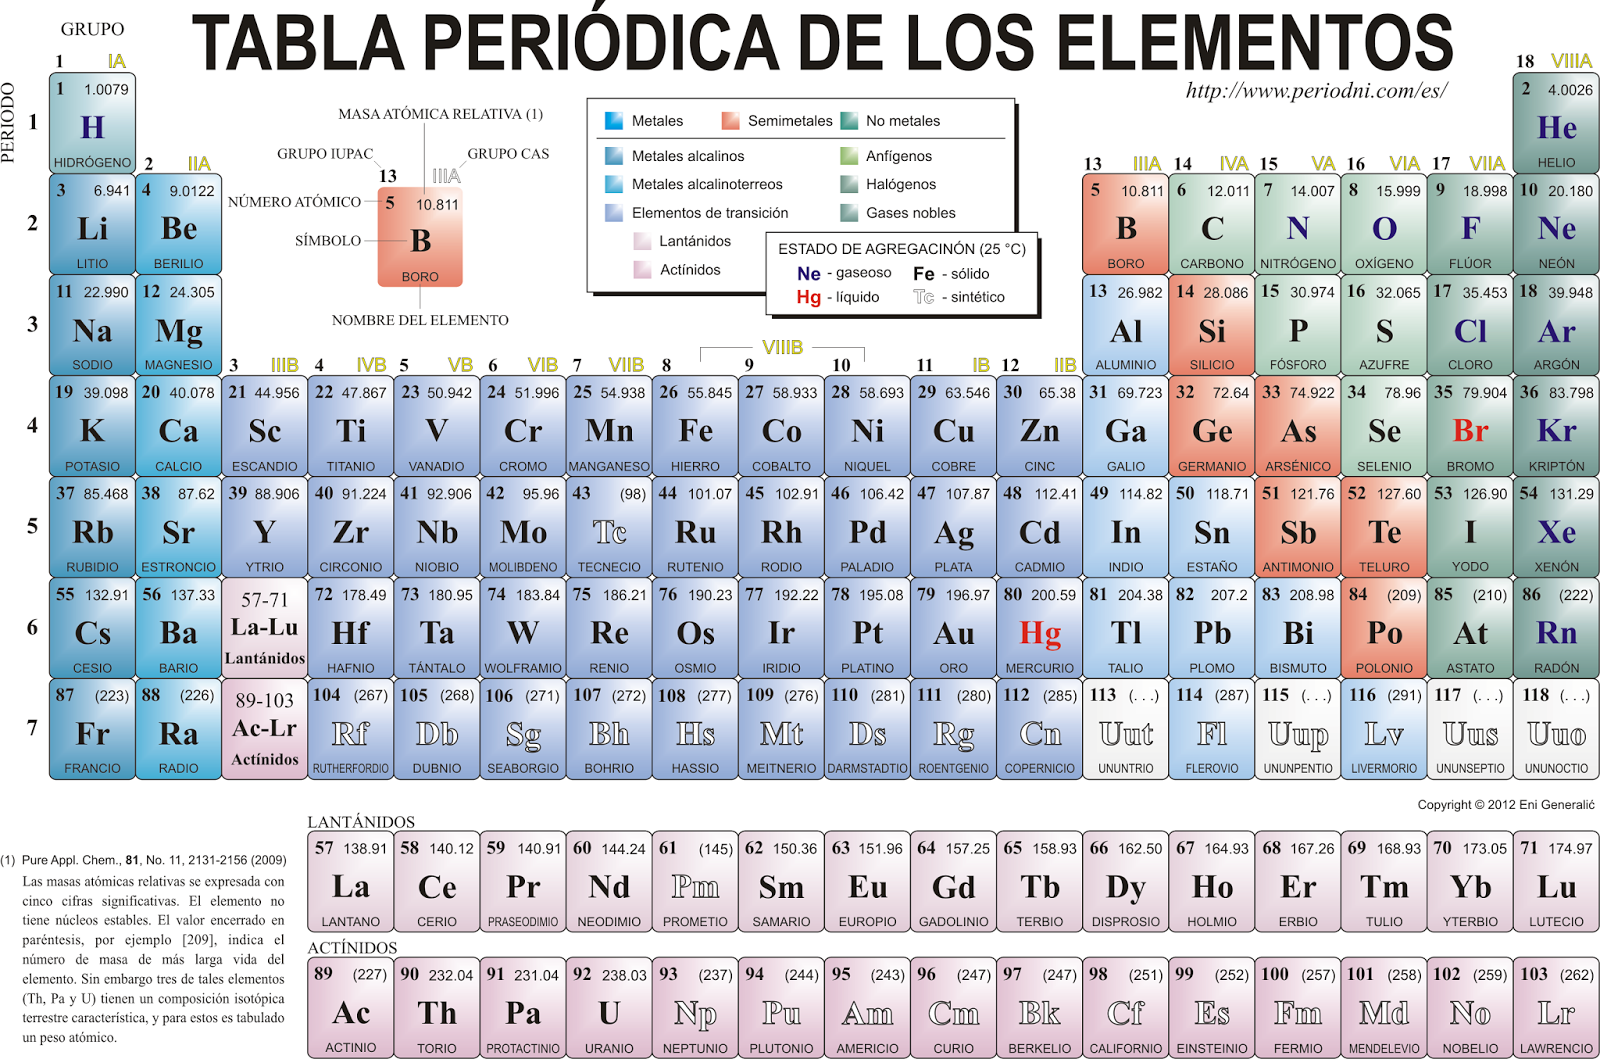 Tabla peridica de elementos qumicos periodic tables of the wolframio urtaz